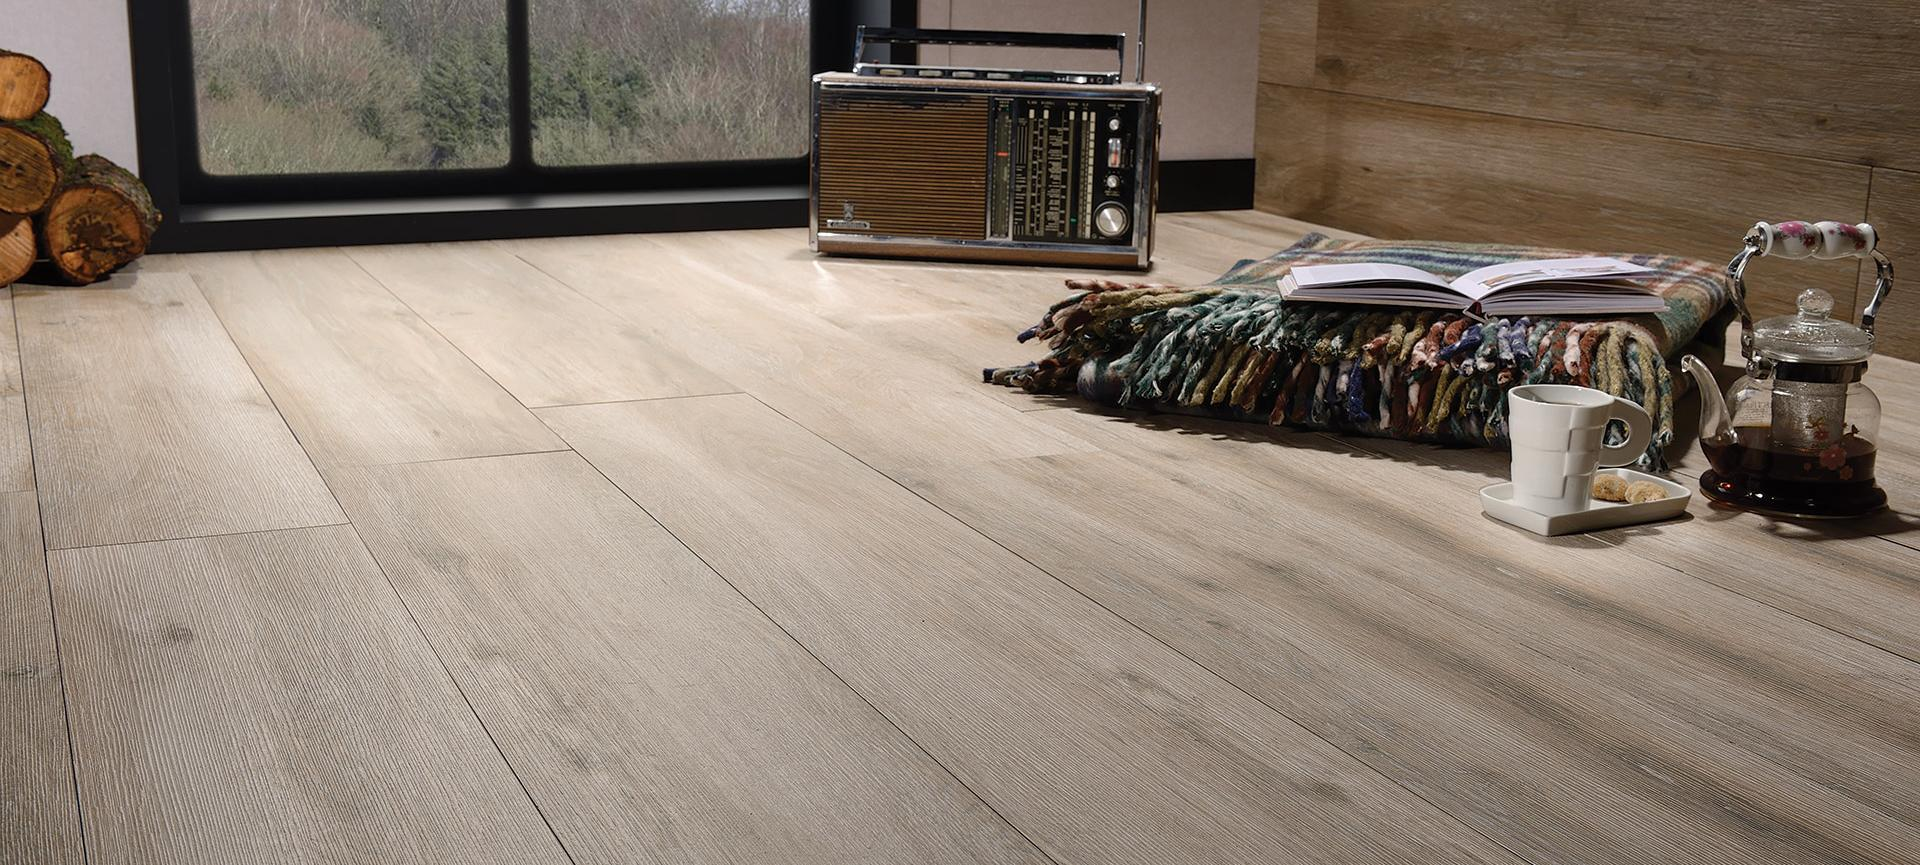 """Wood Effect Porcelain Tiles"""